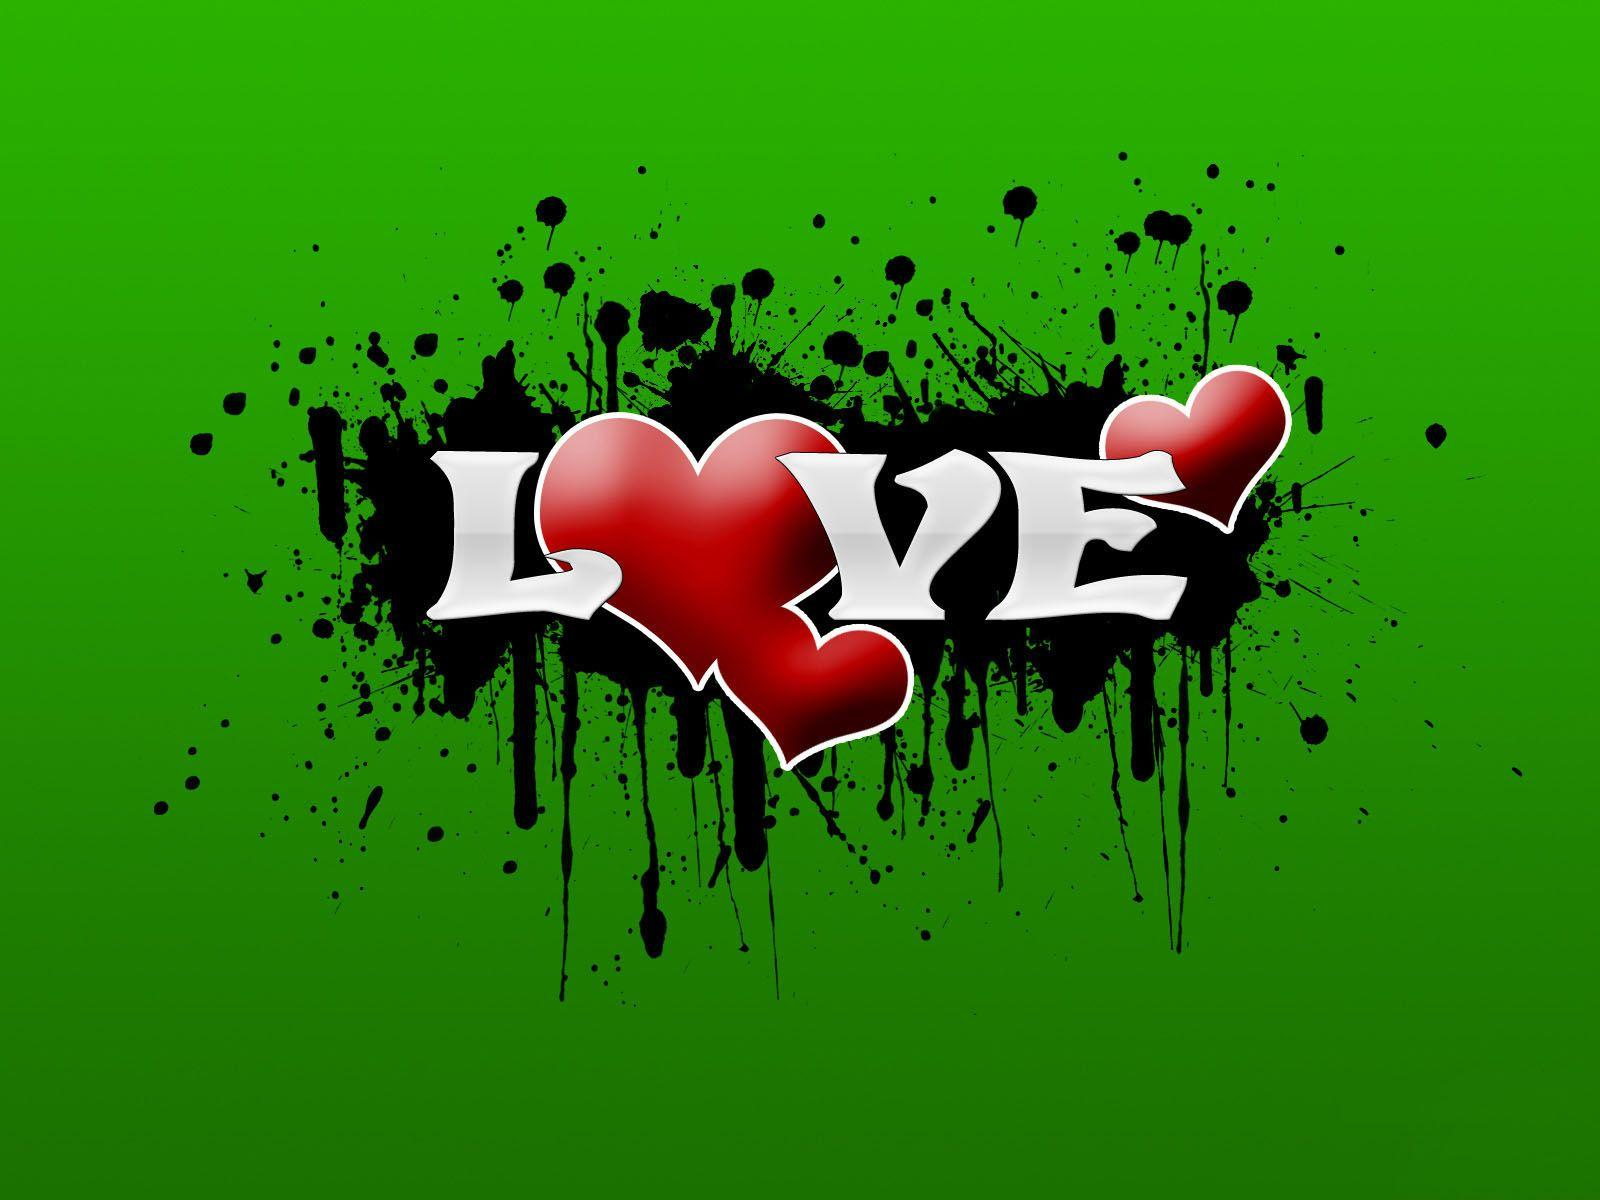 Wallpaper Hd 3d I Love You : Love Wallpapers 3D - Wallpaper cave